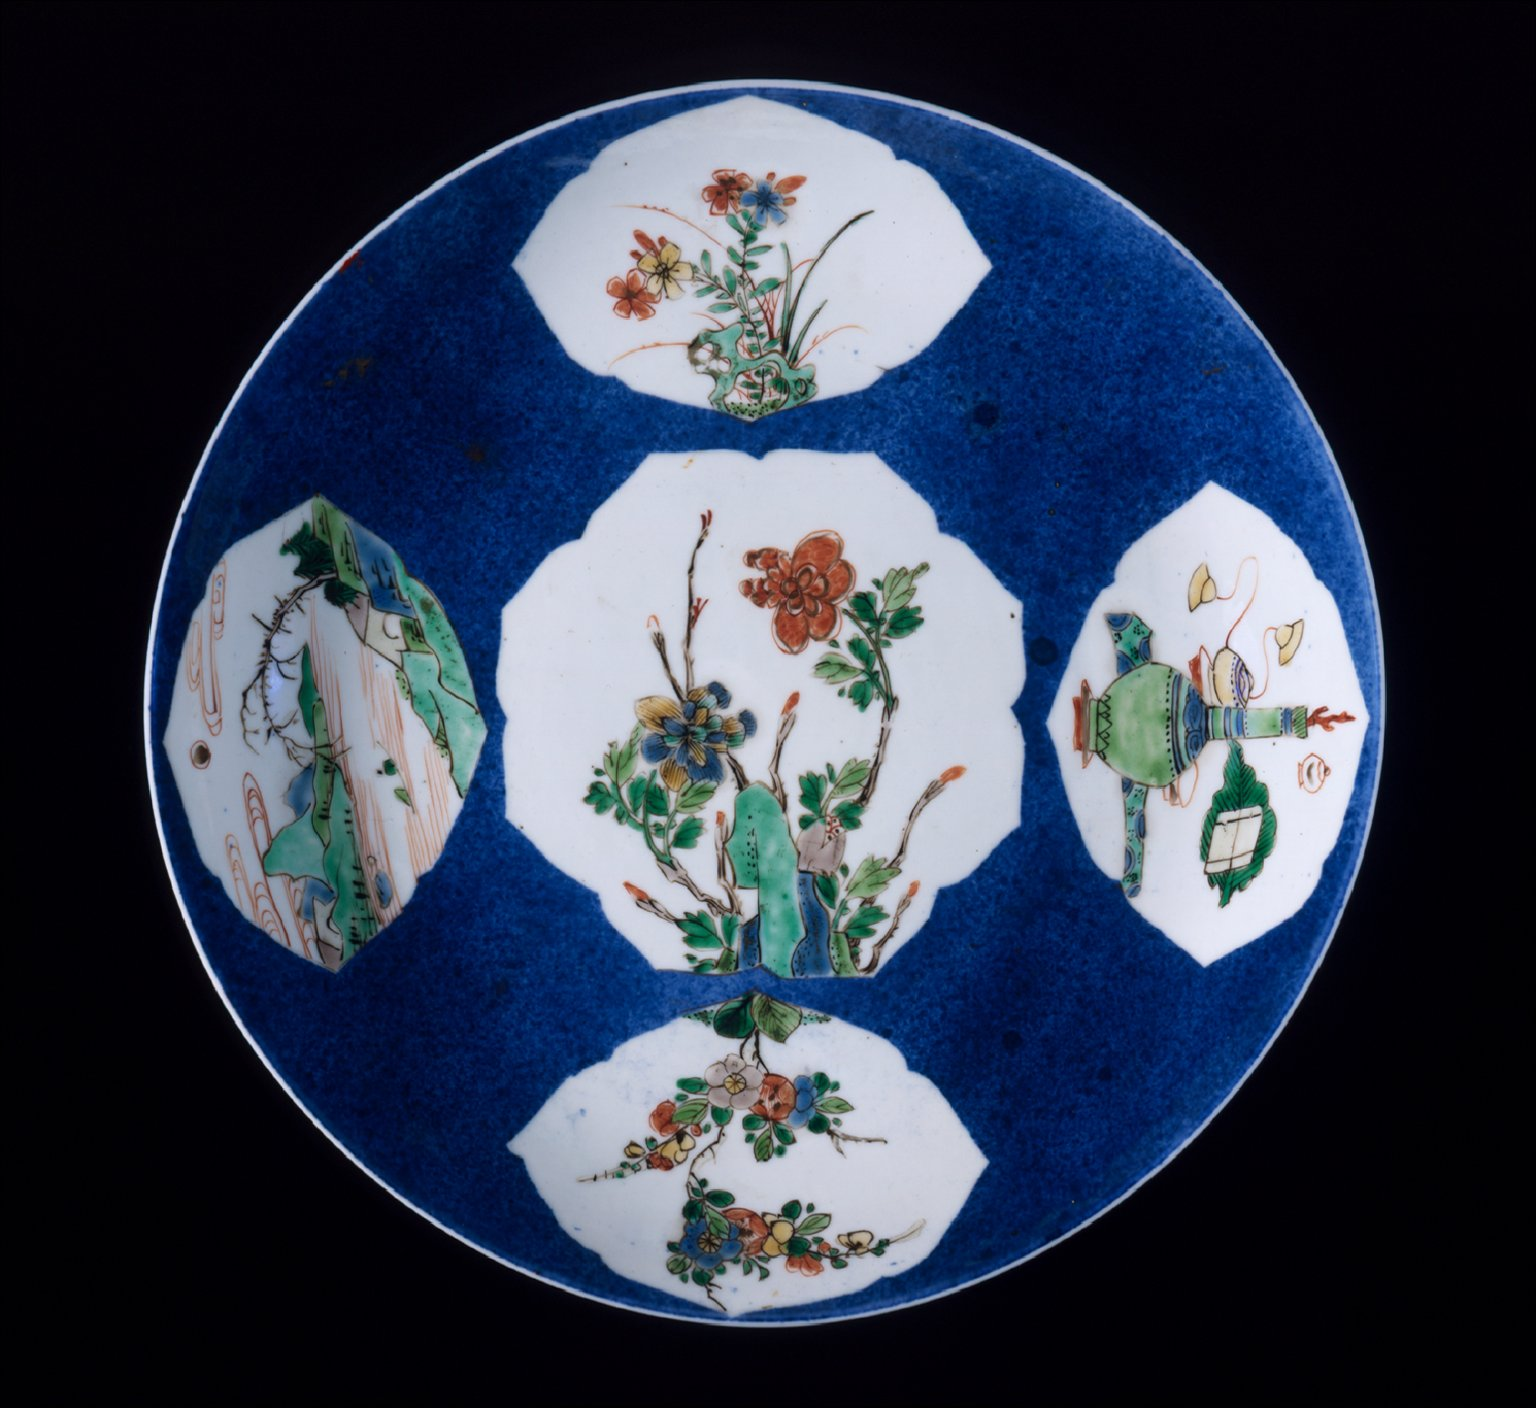 Dish (Pan) with Flowers, Landscapes, and Vessels with Musical Instruments